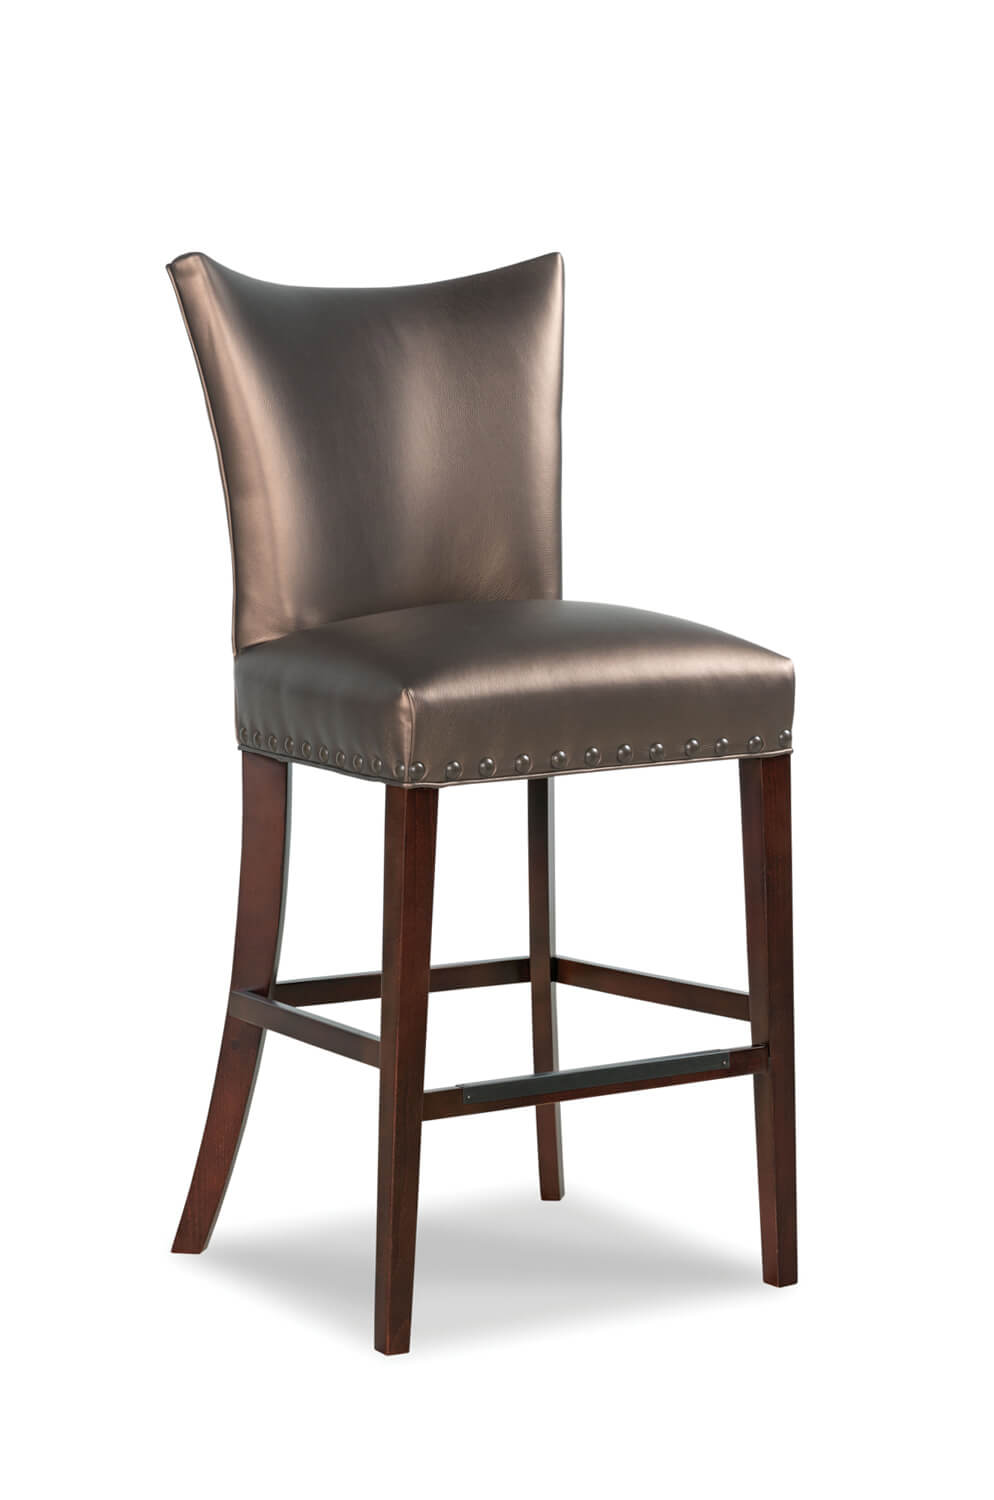 Fairfield's Casey Transitional Bar Stool with Curved Backrest